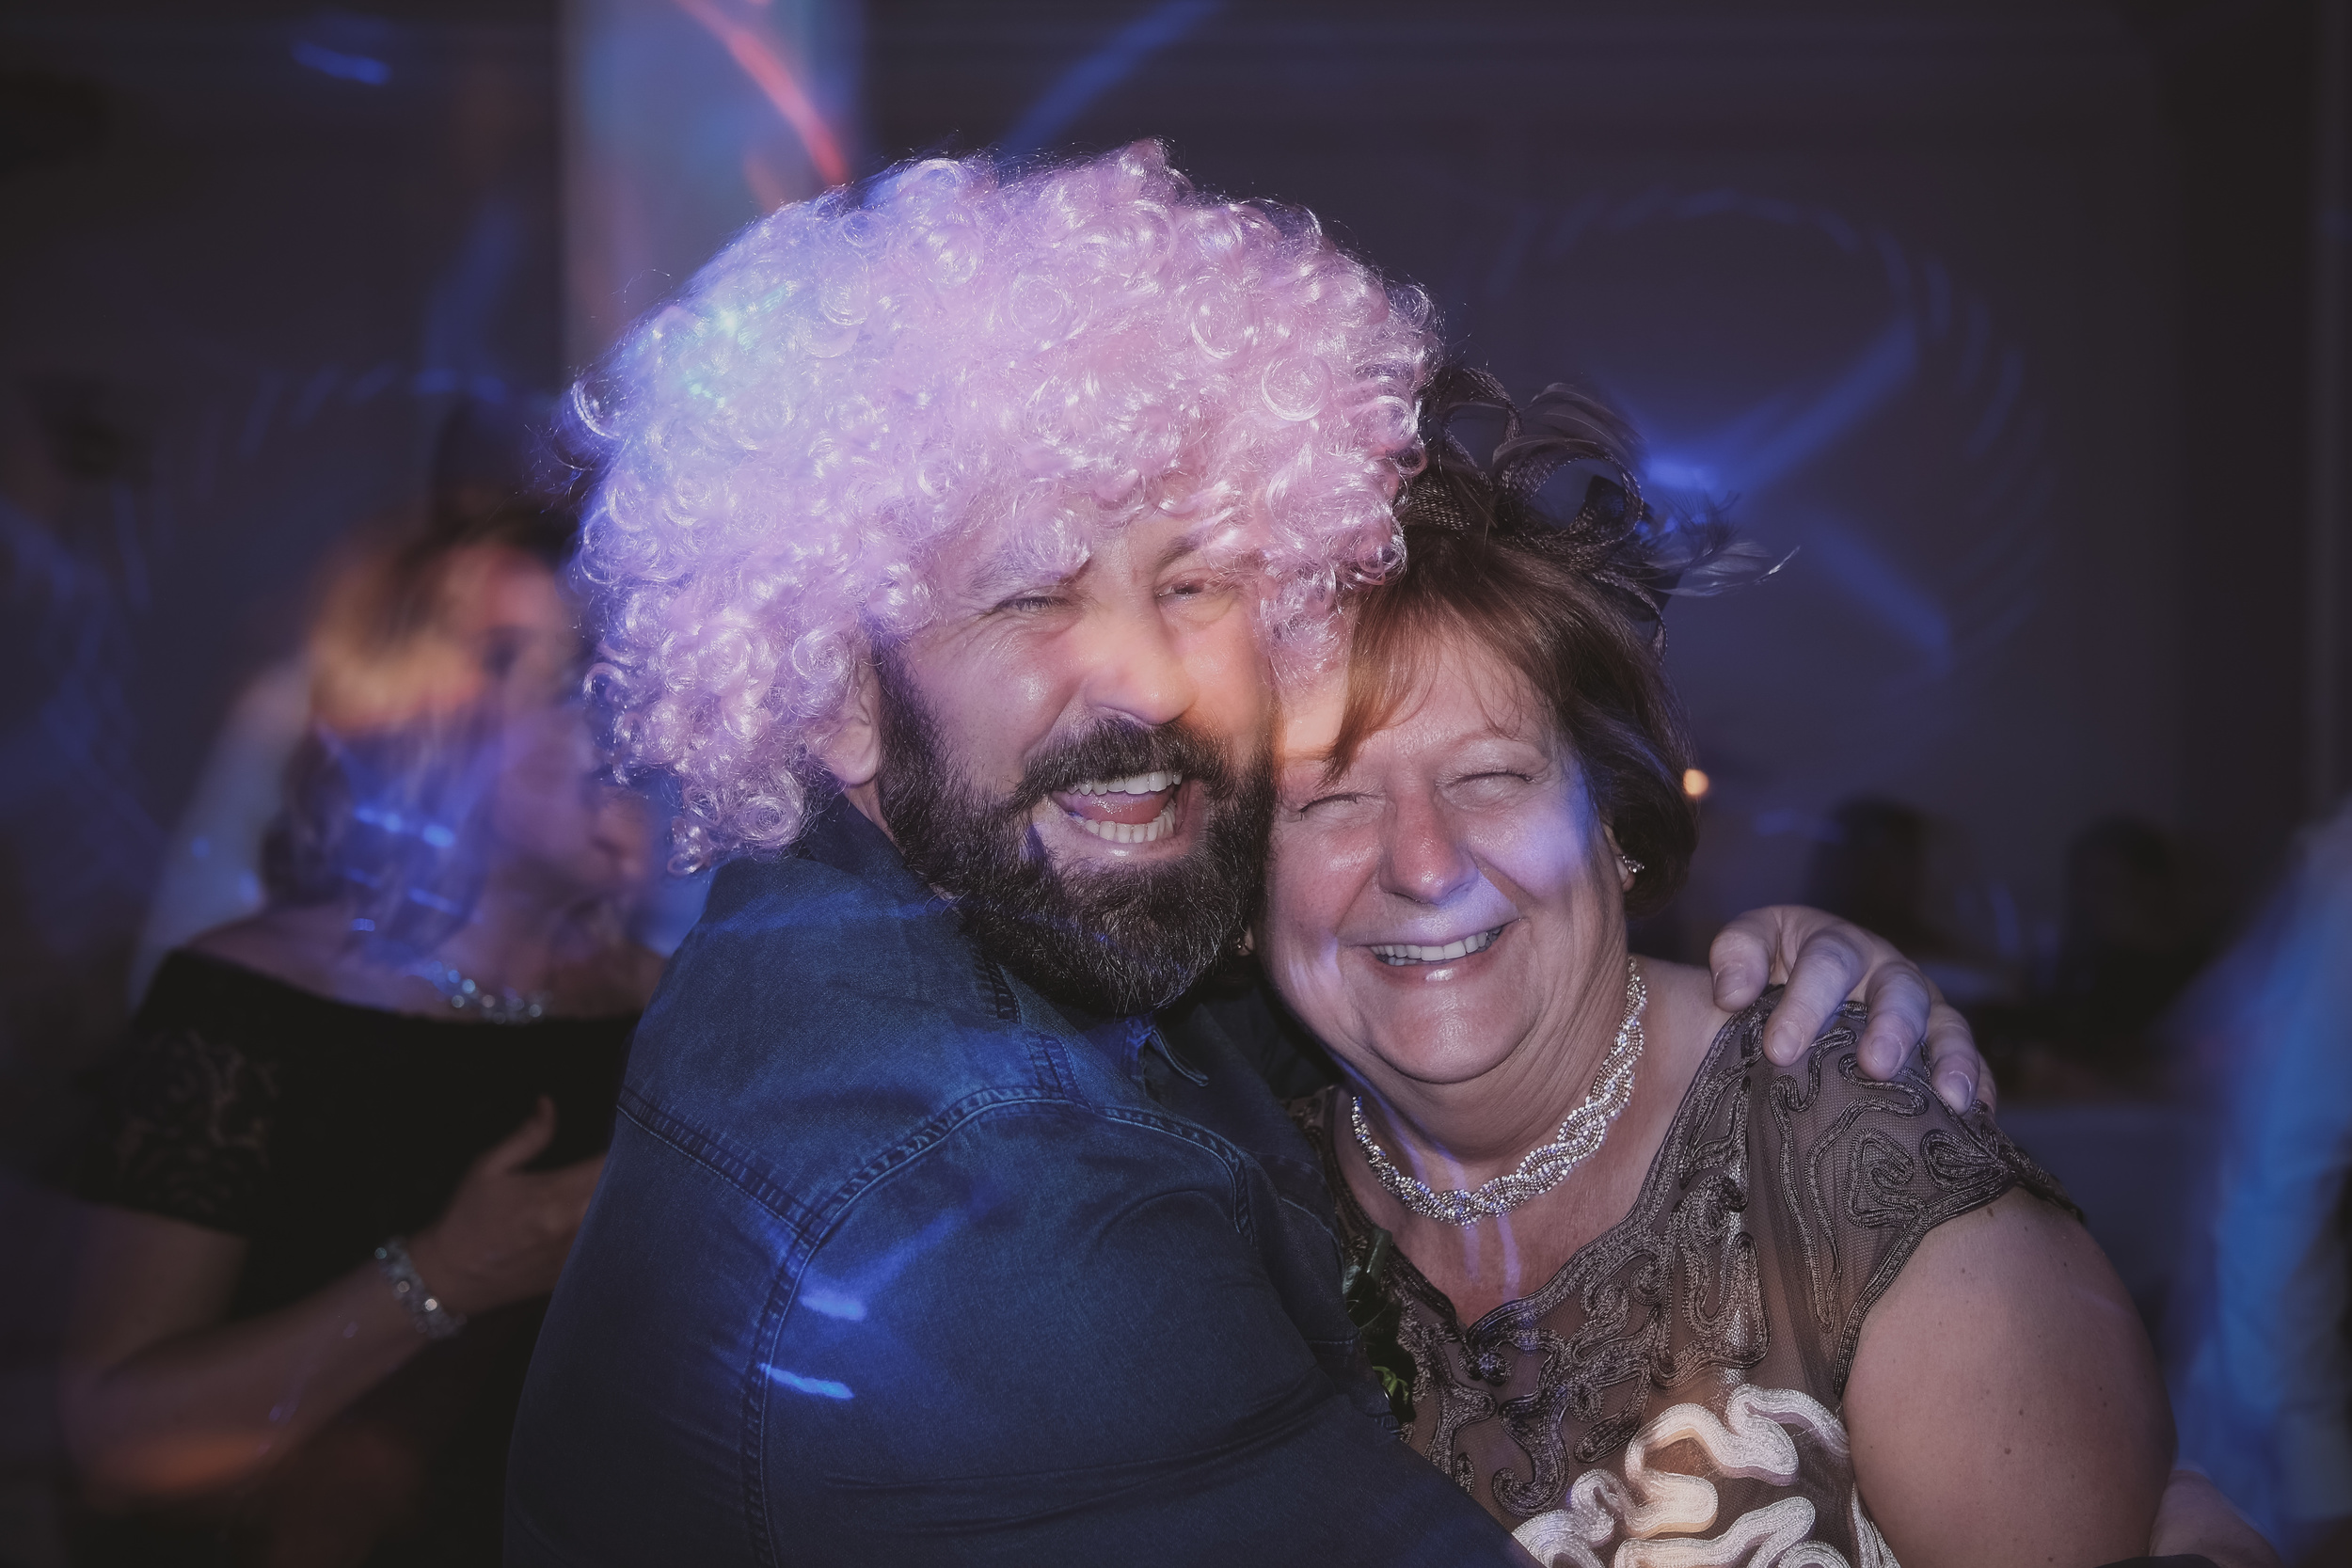 Newcastle Wedding Photographer // Guests cuddle on dance floor while wearing wig